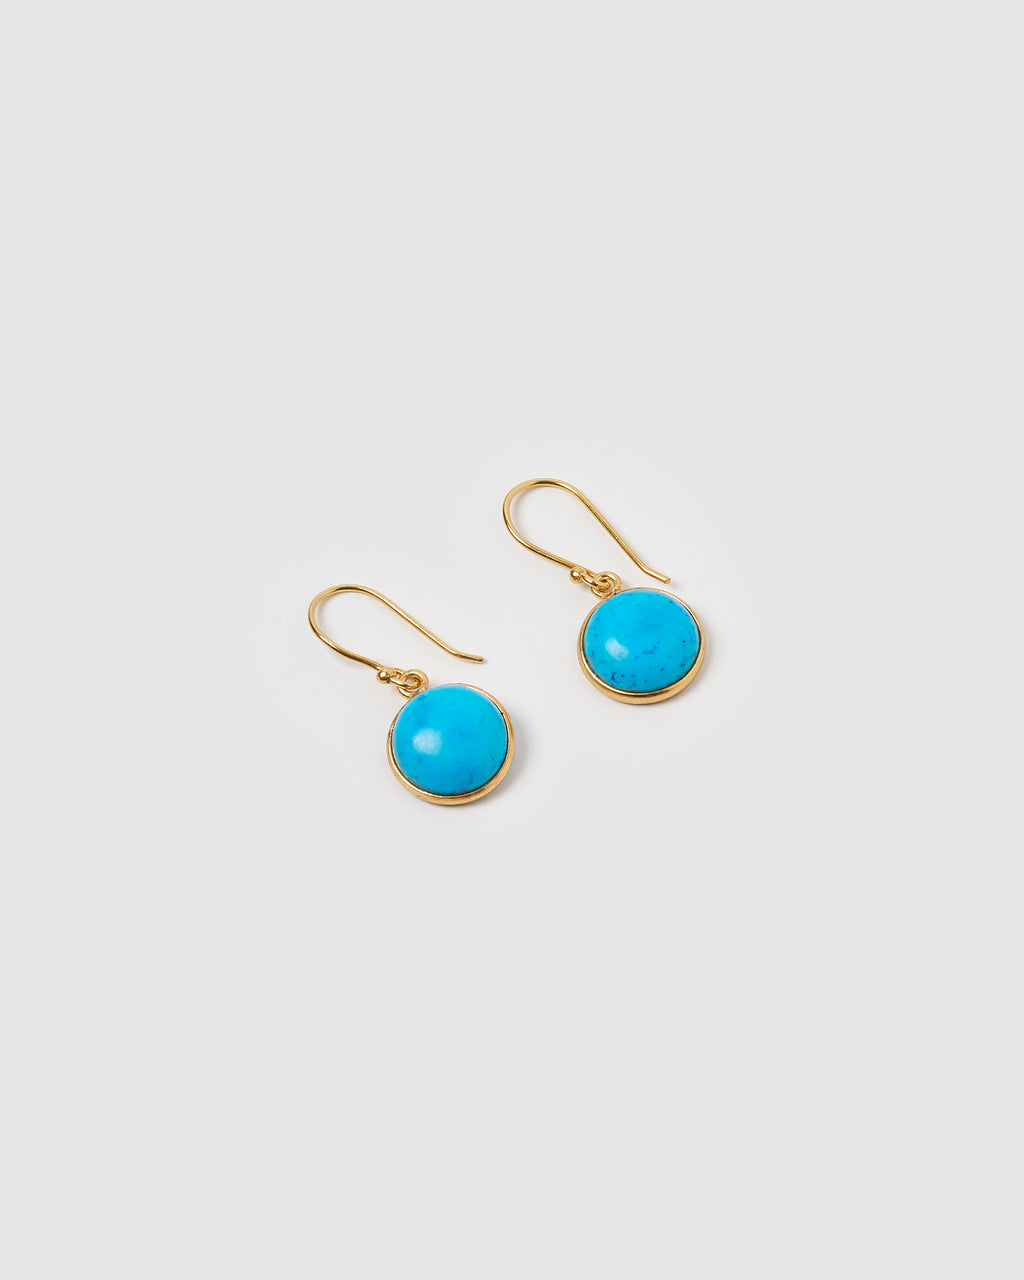 Izoa Truth Earrings Turquoise Gold